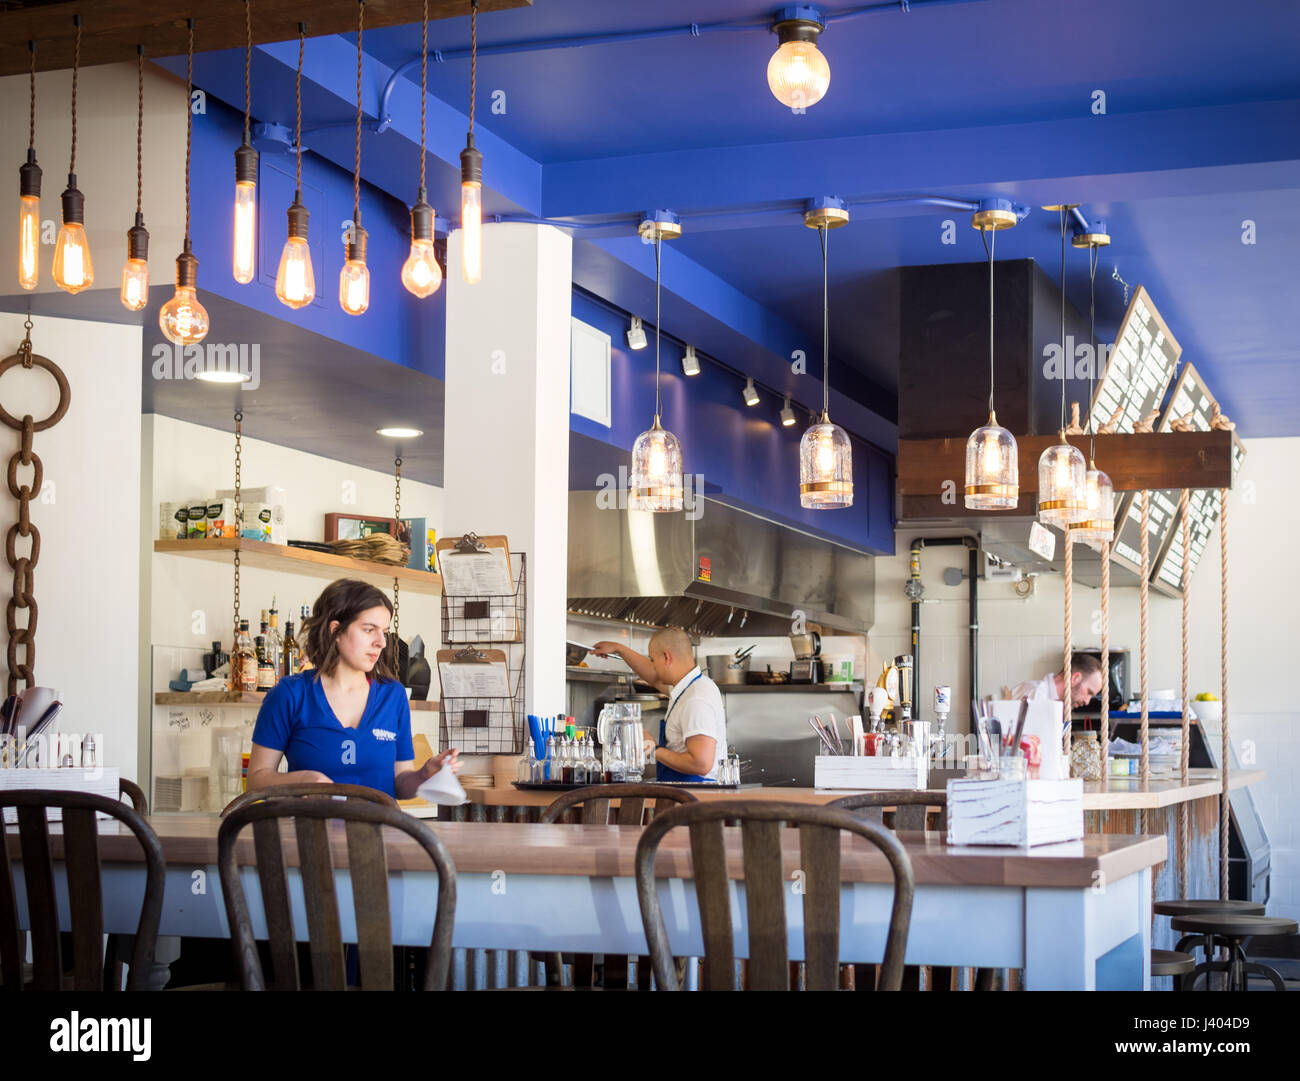 The Interior Of Grandin Fish N Chips A Popular Fish And Chips Shop Stock Photo Alamy